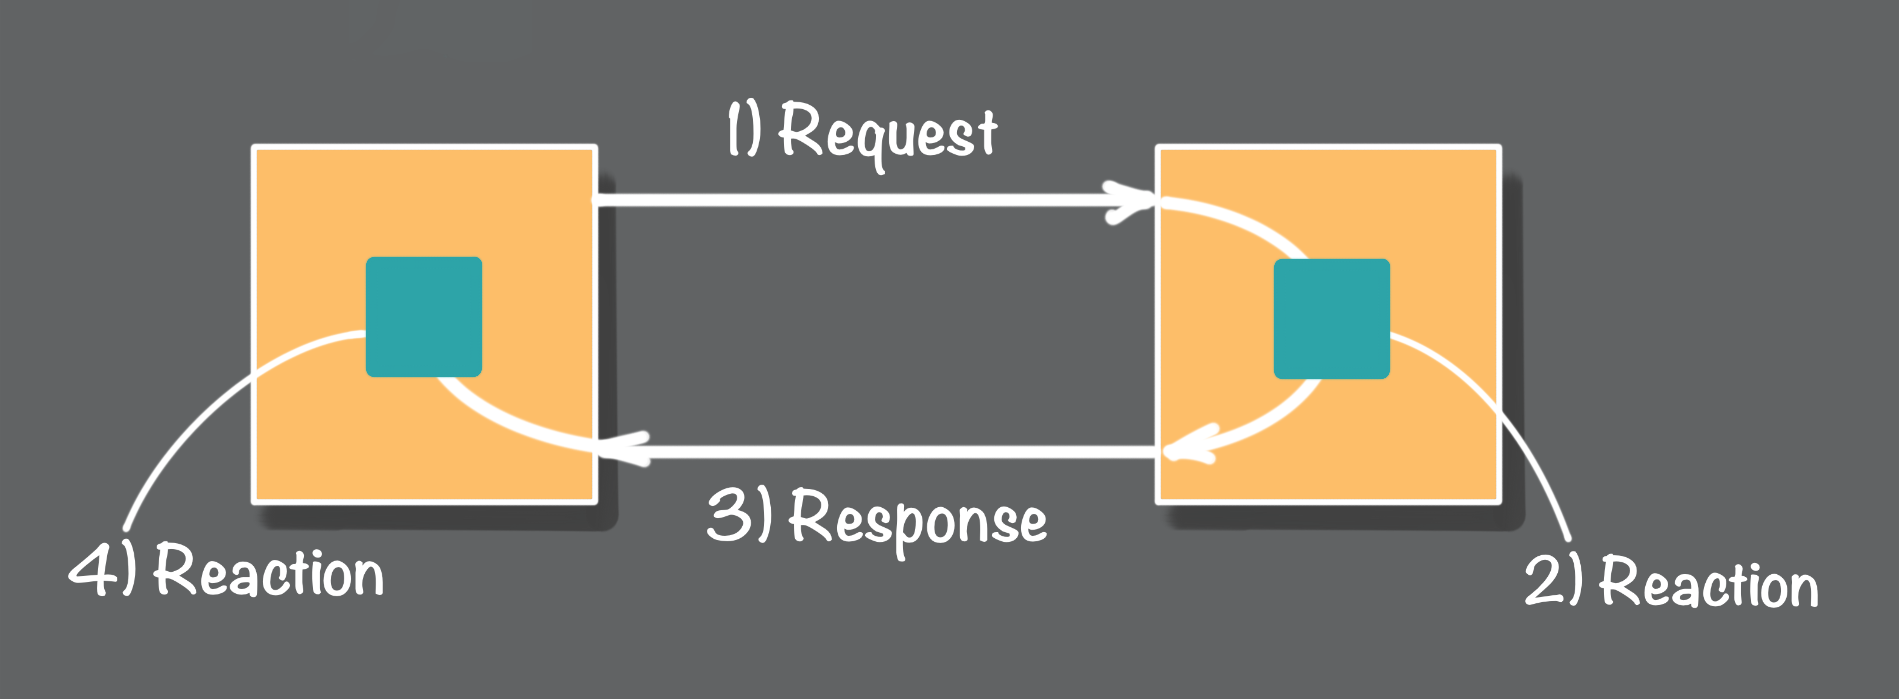 Figure 1: Four step message request to response cycle